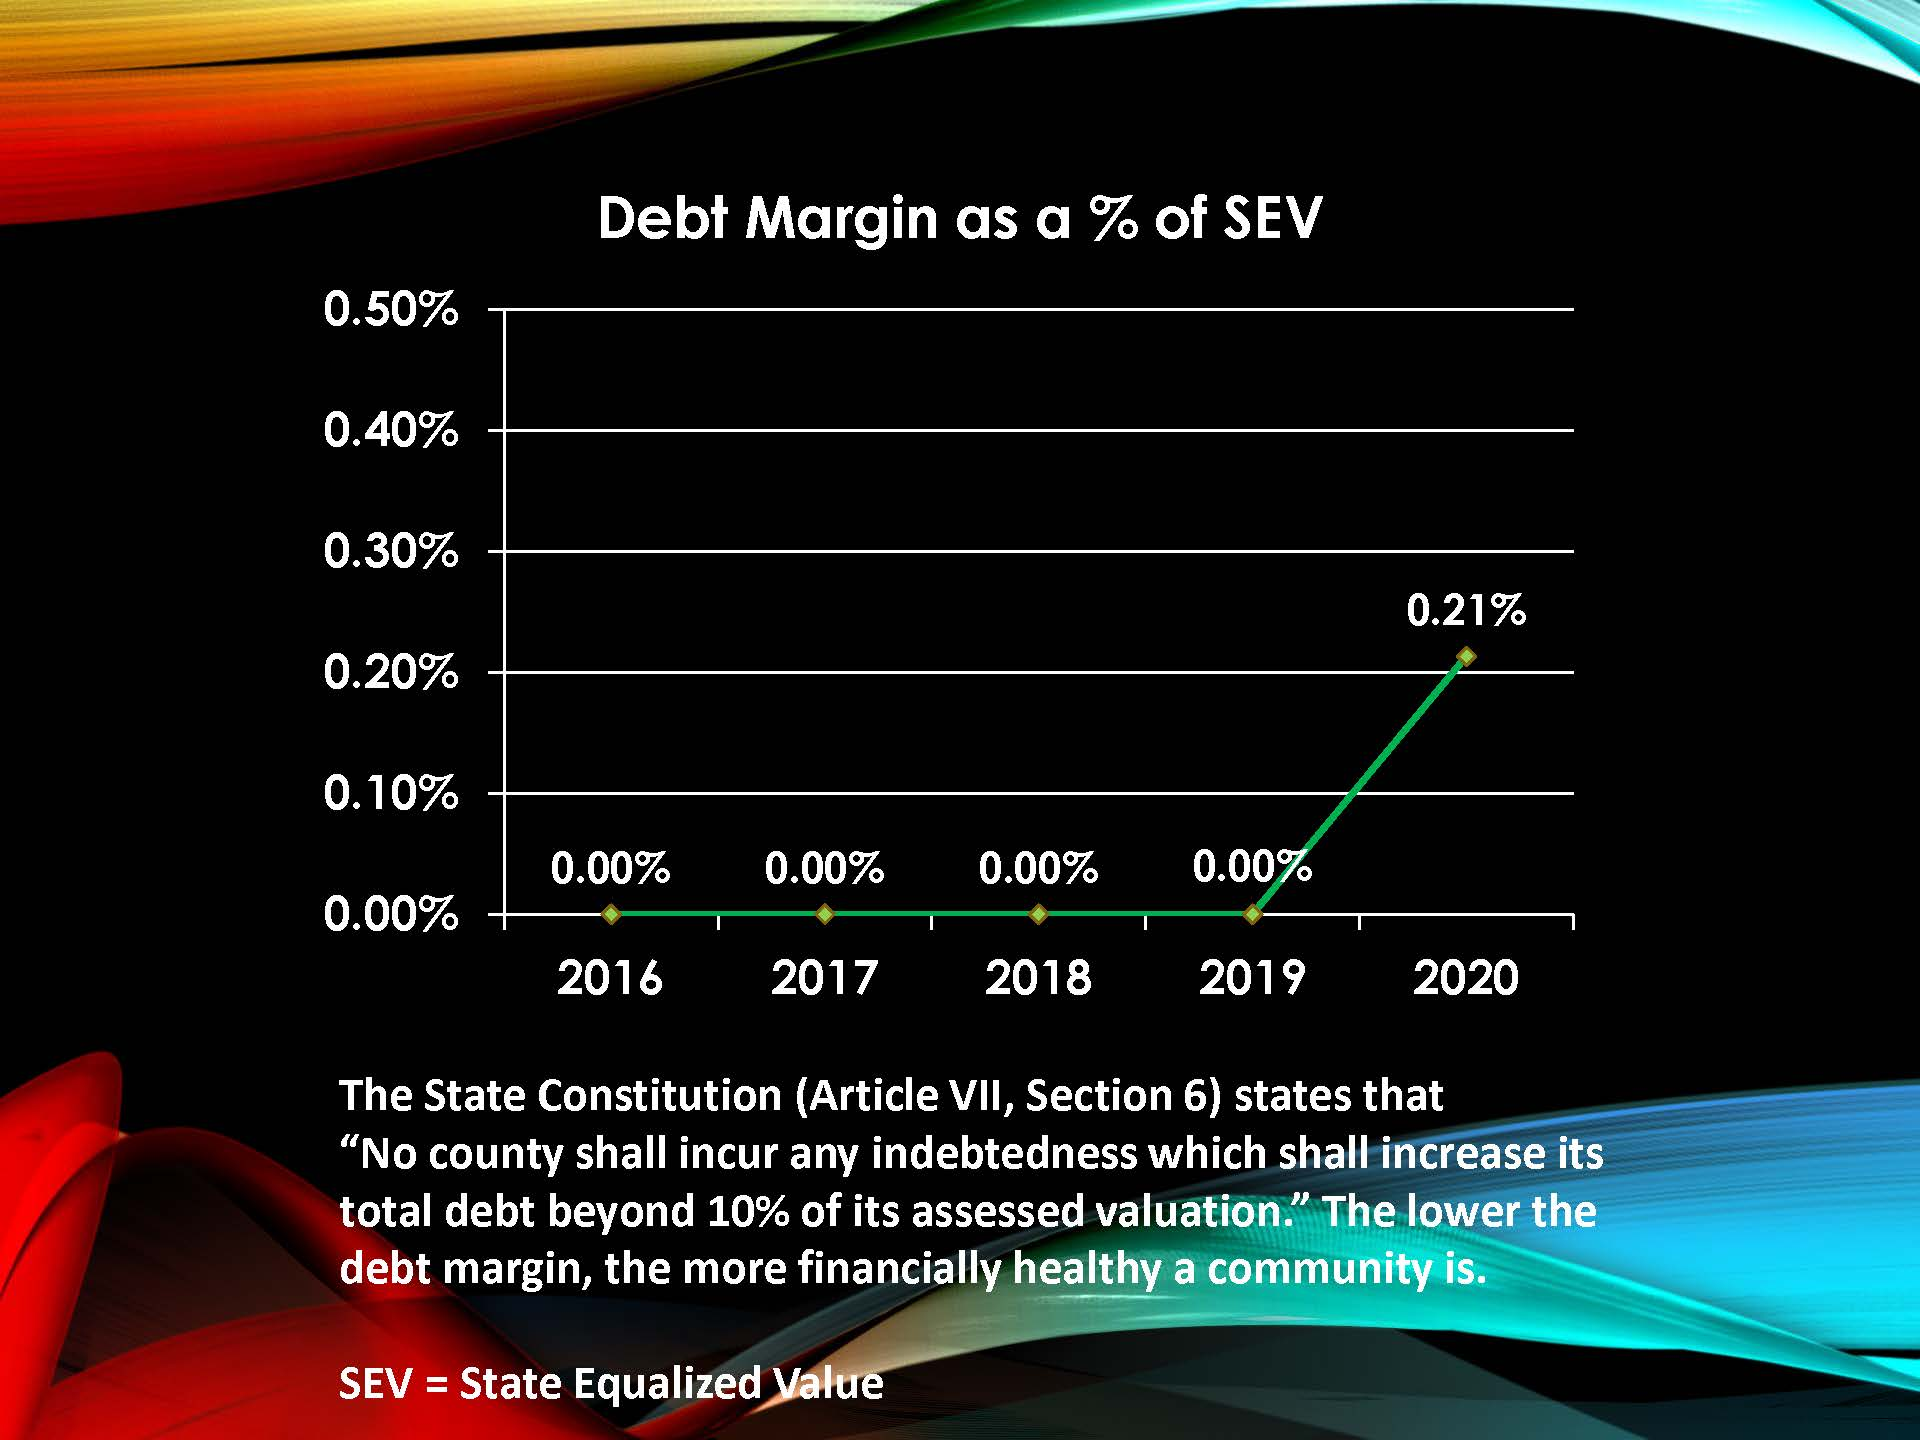 Debt Margin as a Percent of SEV Chart